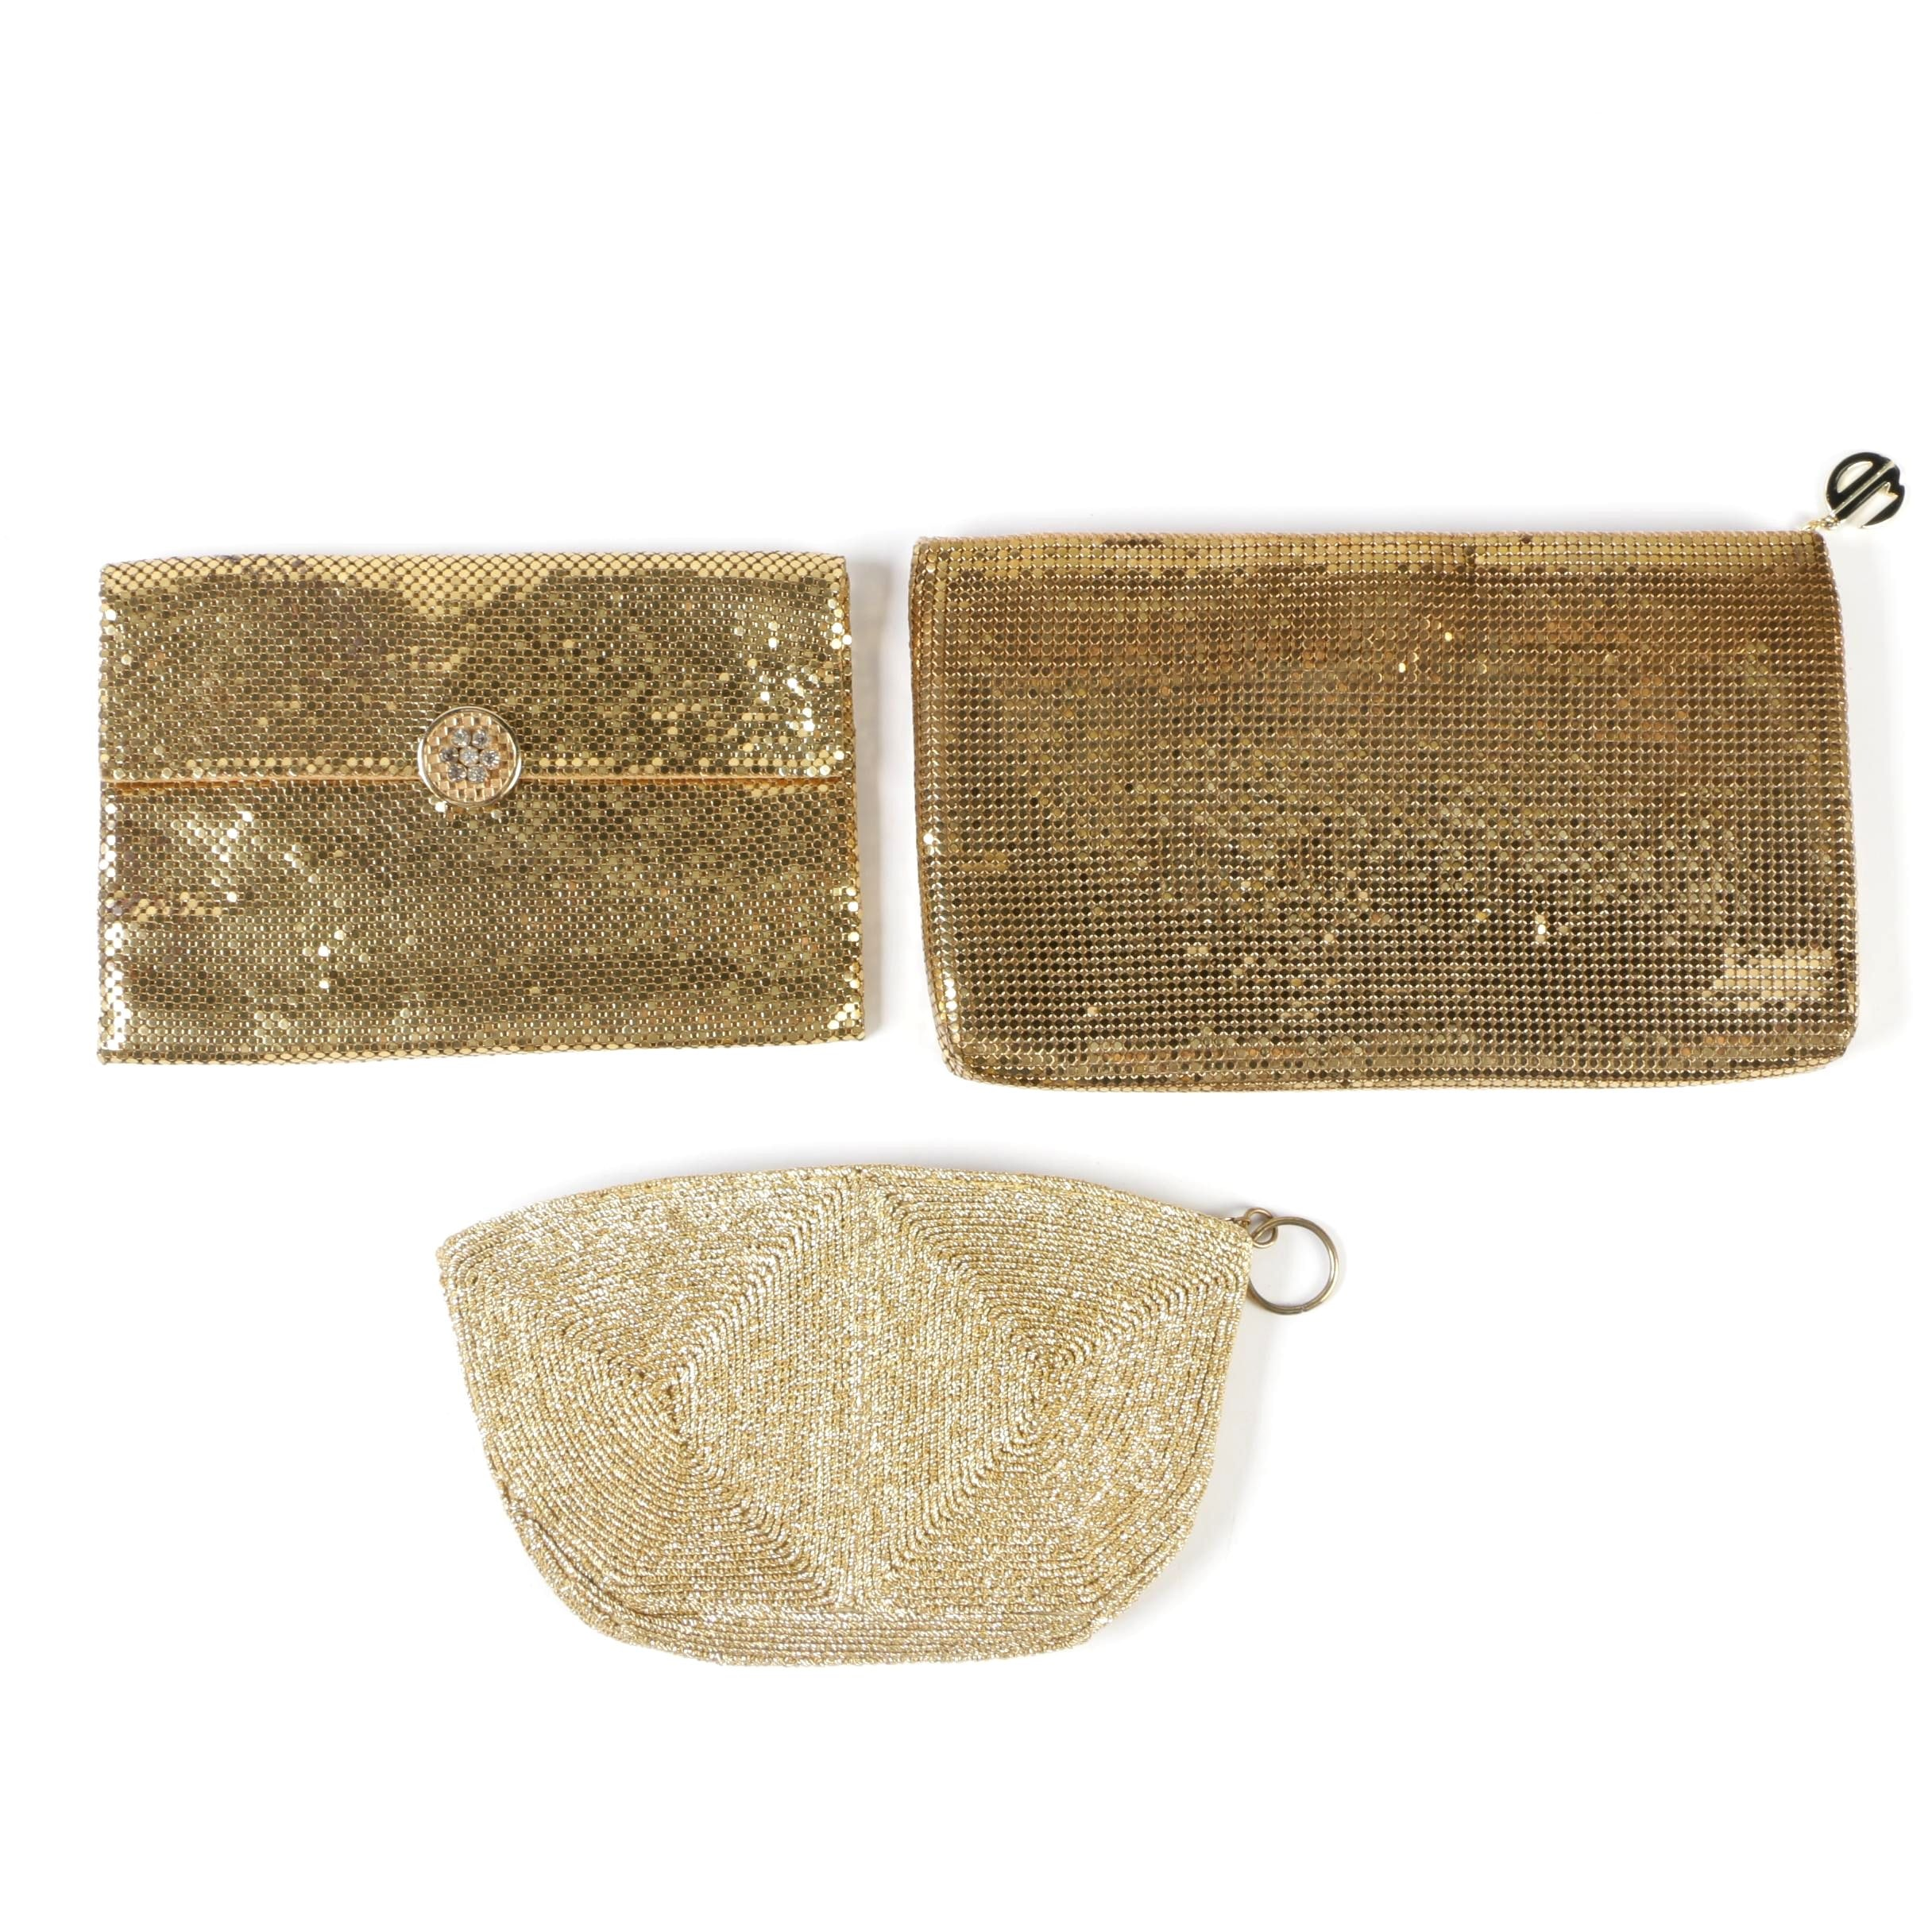 Metallic Gold and Mesh Clutches Including Whiting & Davis, Vintage